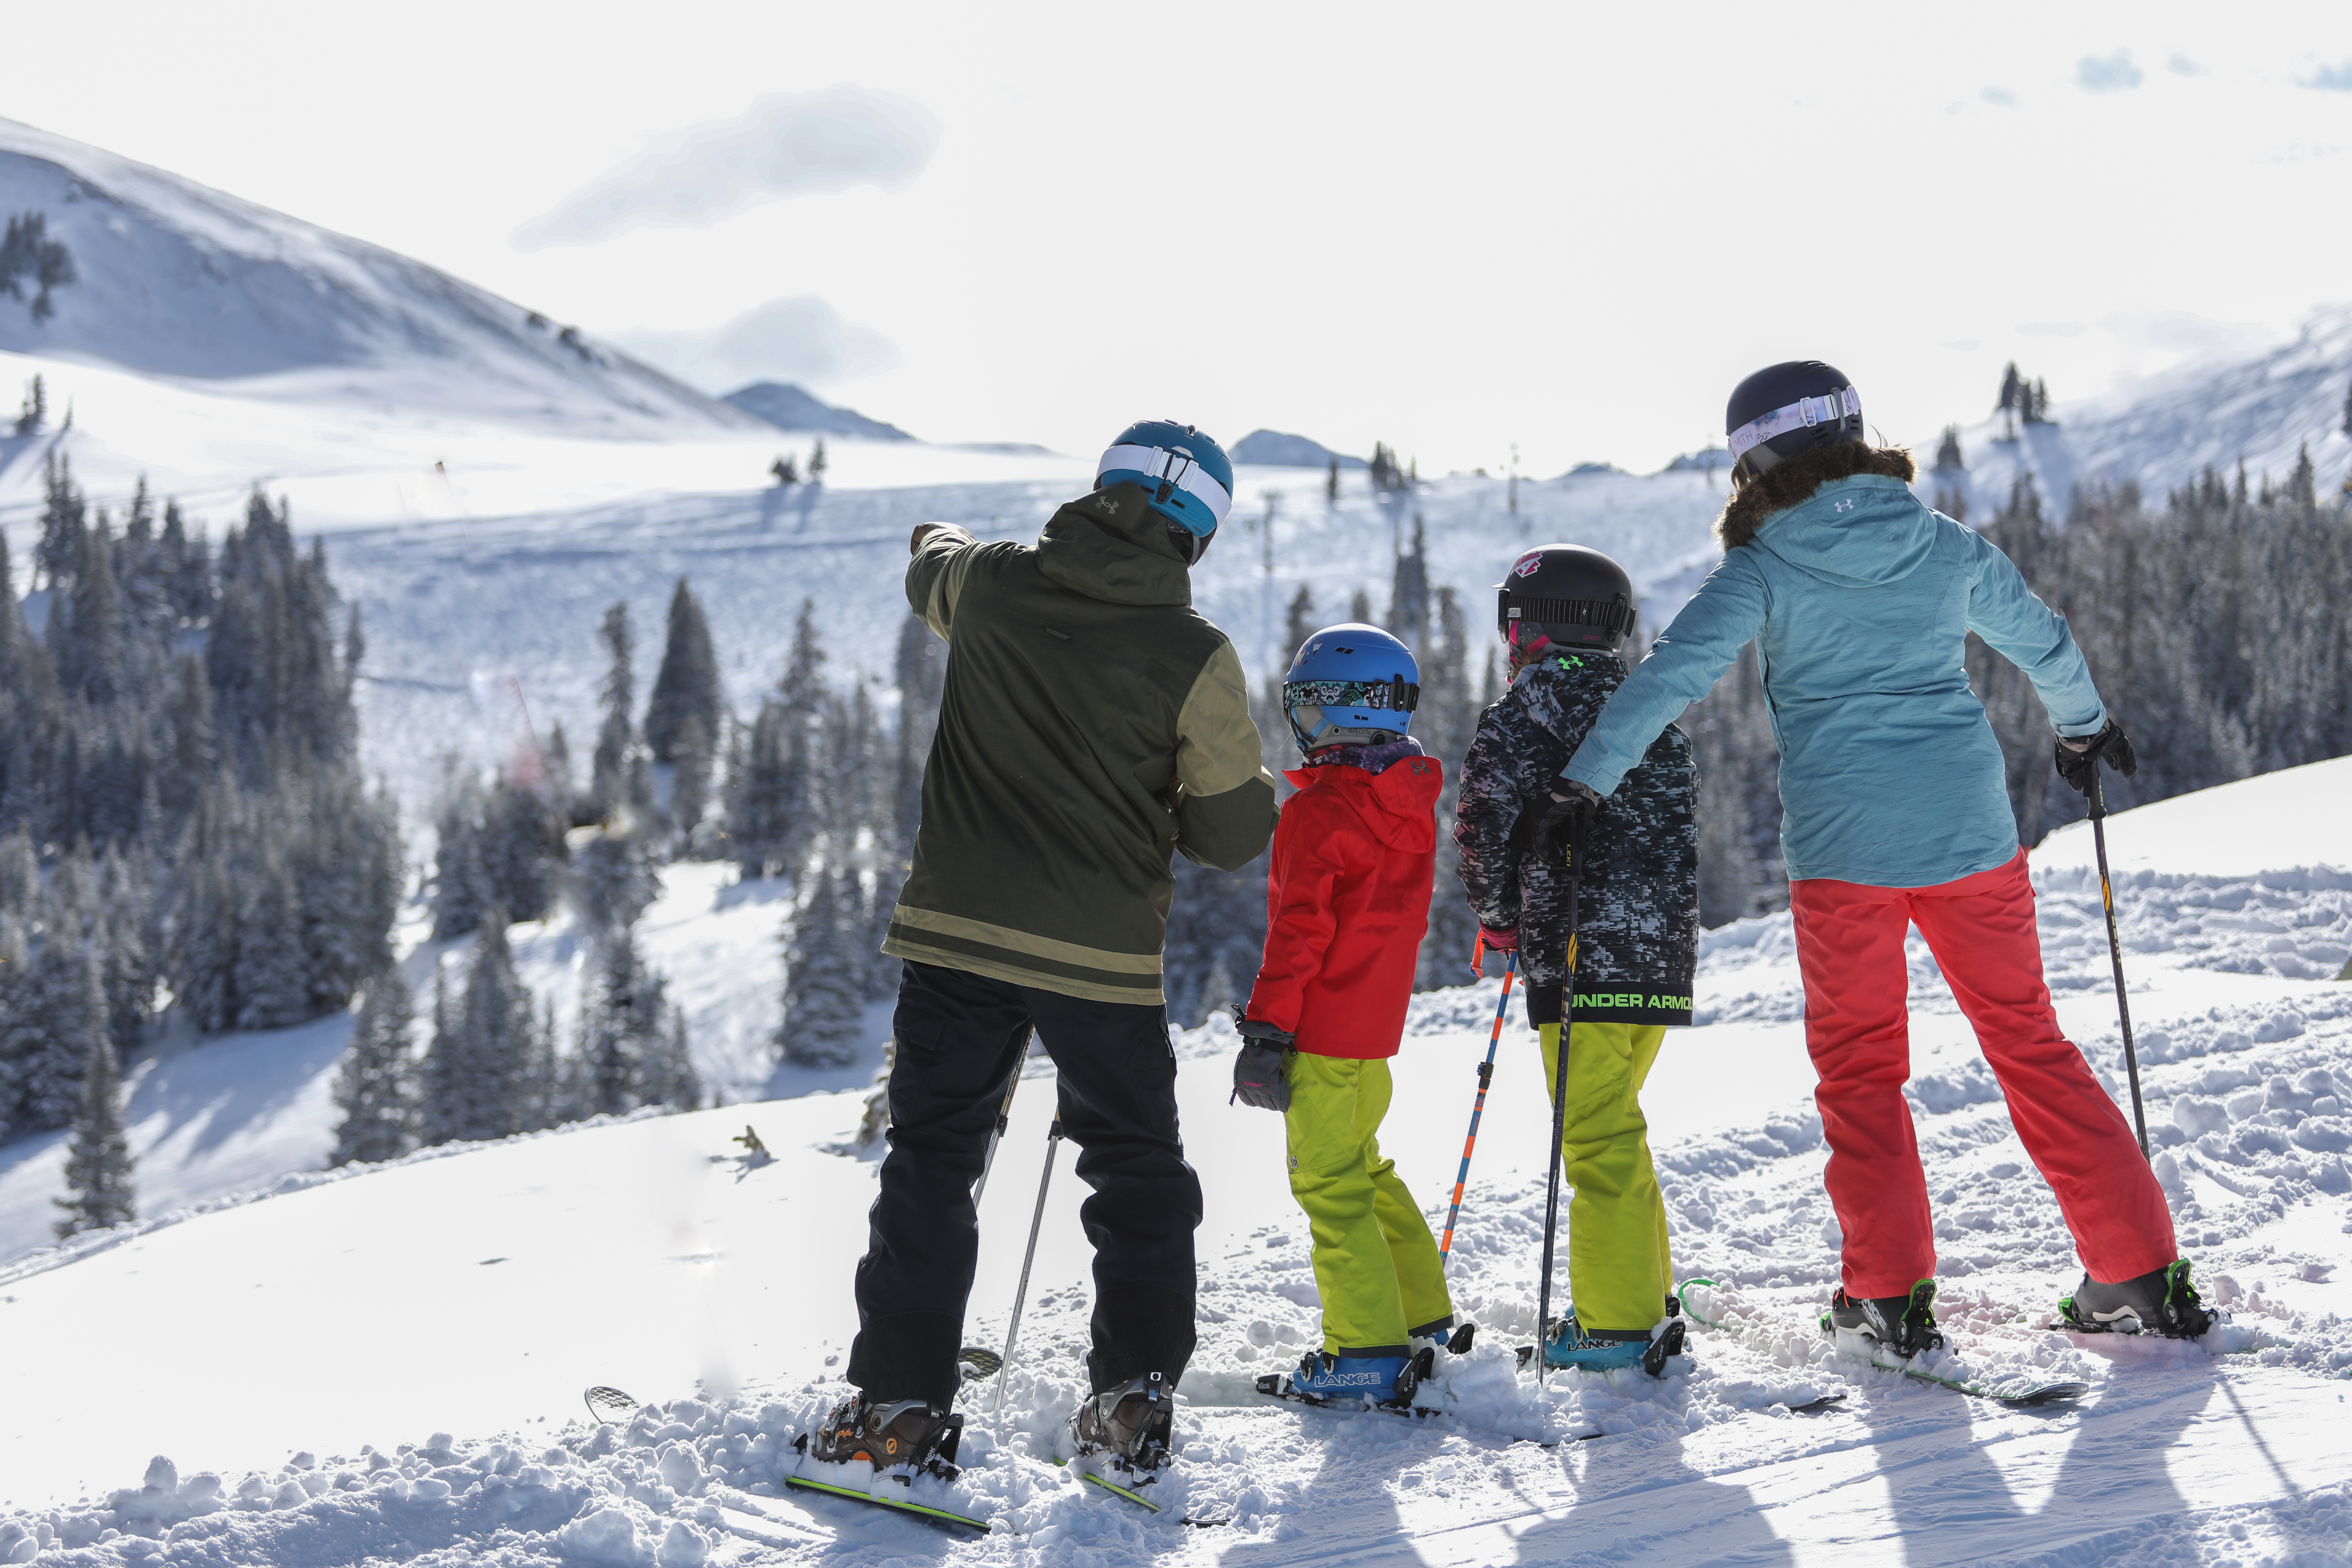 A family skiing at Copper Mountain, one of the best family ski resorts in Colorado